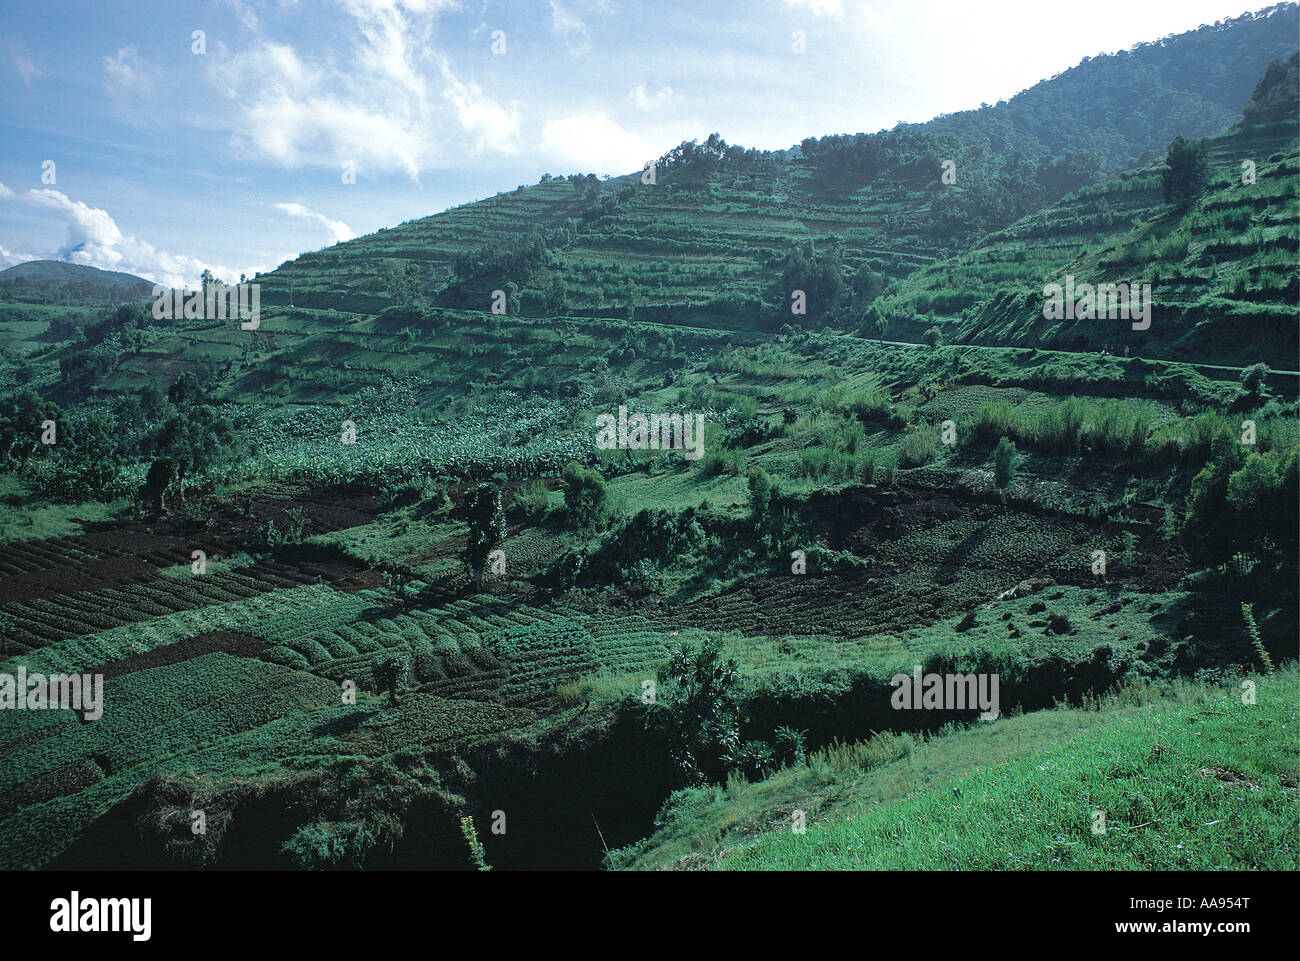 Intensive cultivation on small farms with terraces north of Kigali Rwanda A road is crossing the tarraced hillside - Stock Image